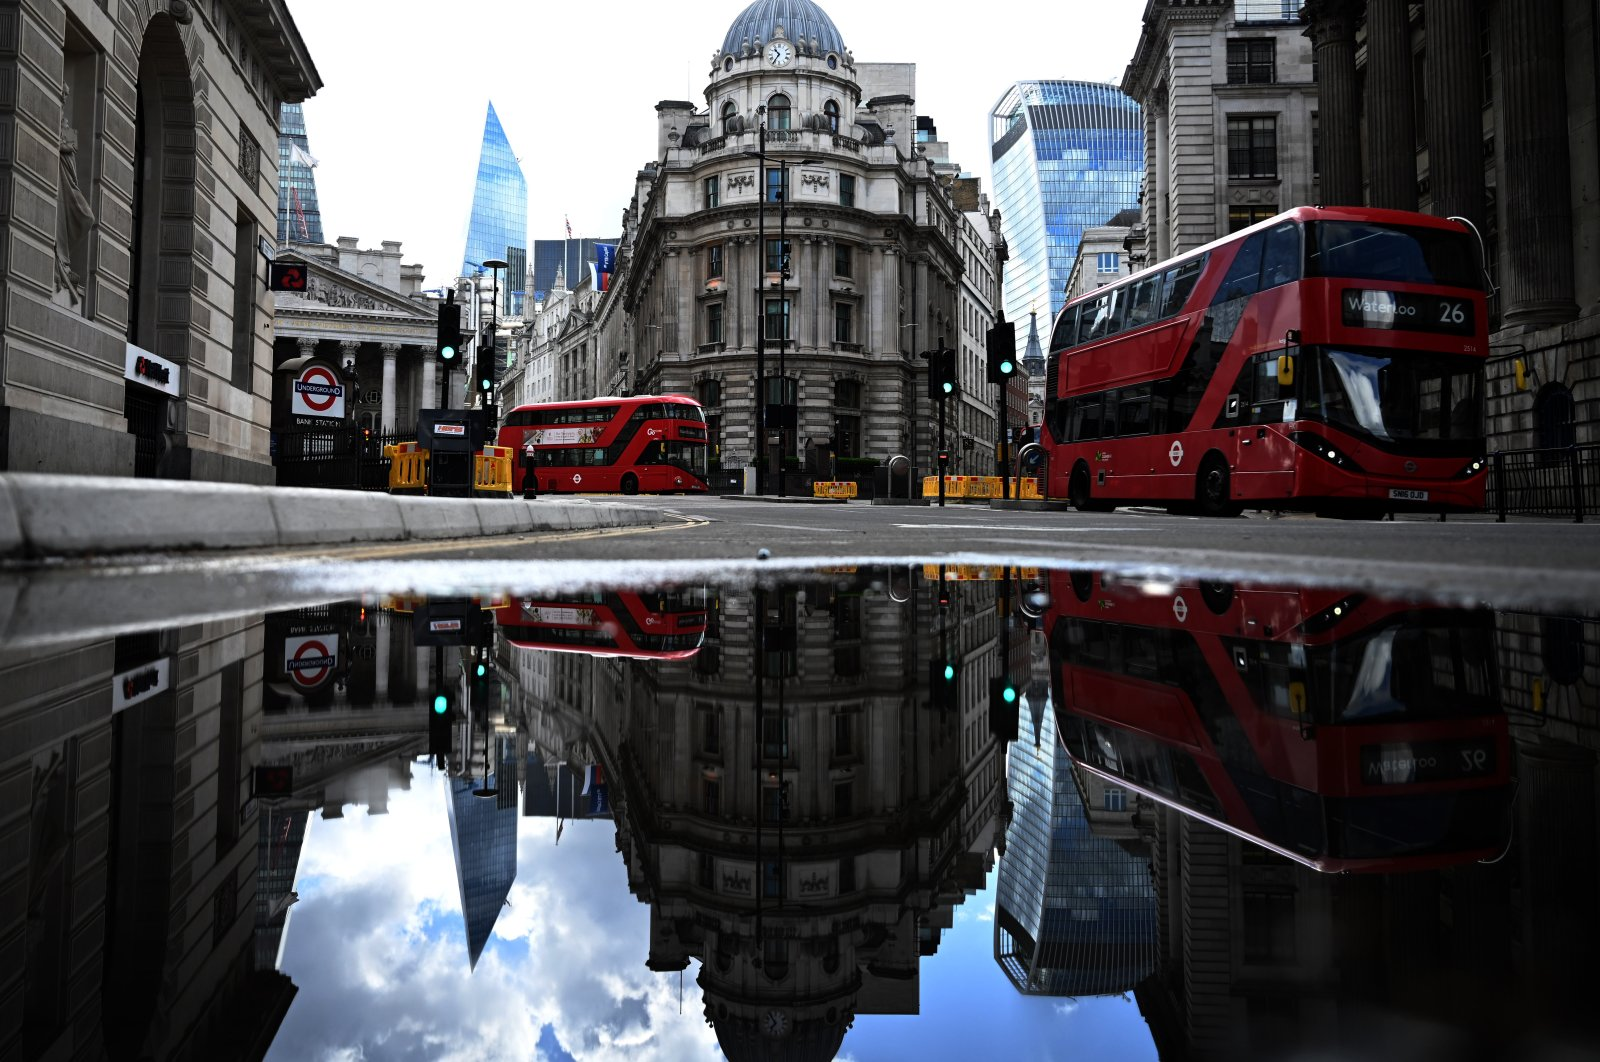 Red buses pass the Bank of England in the financial district of London, May 14, 2020. (EPA Photo)